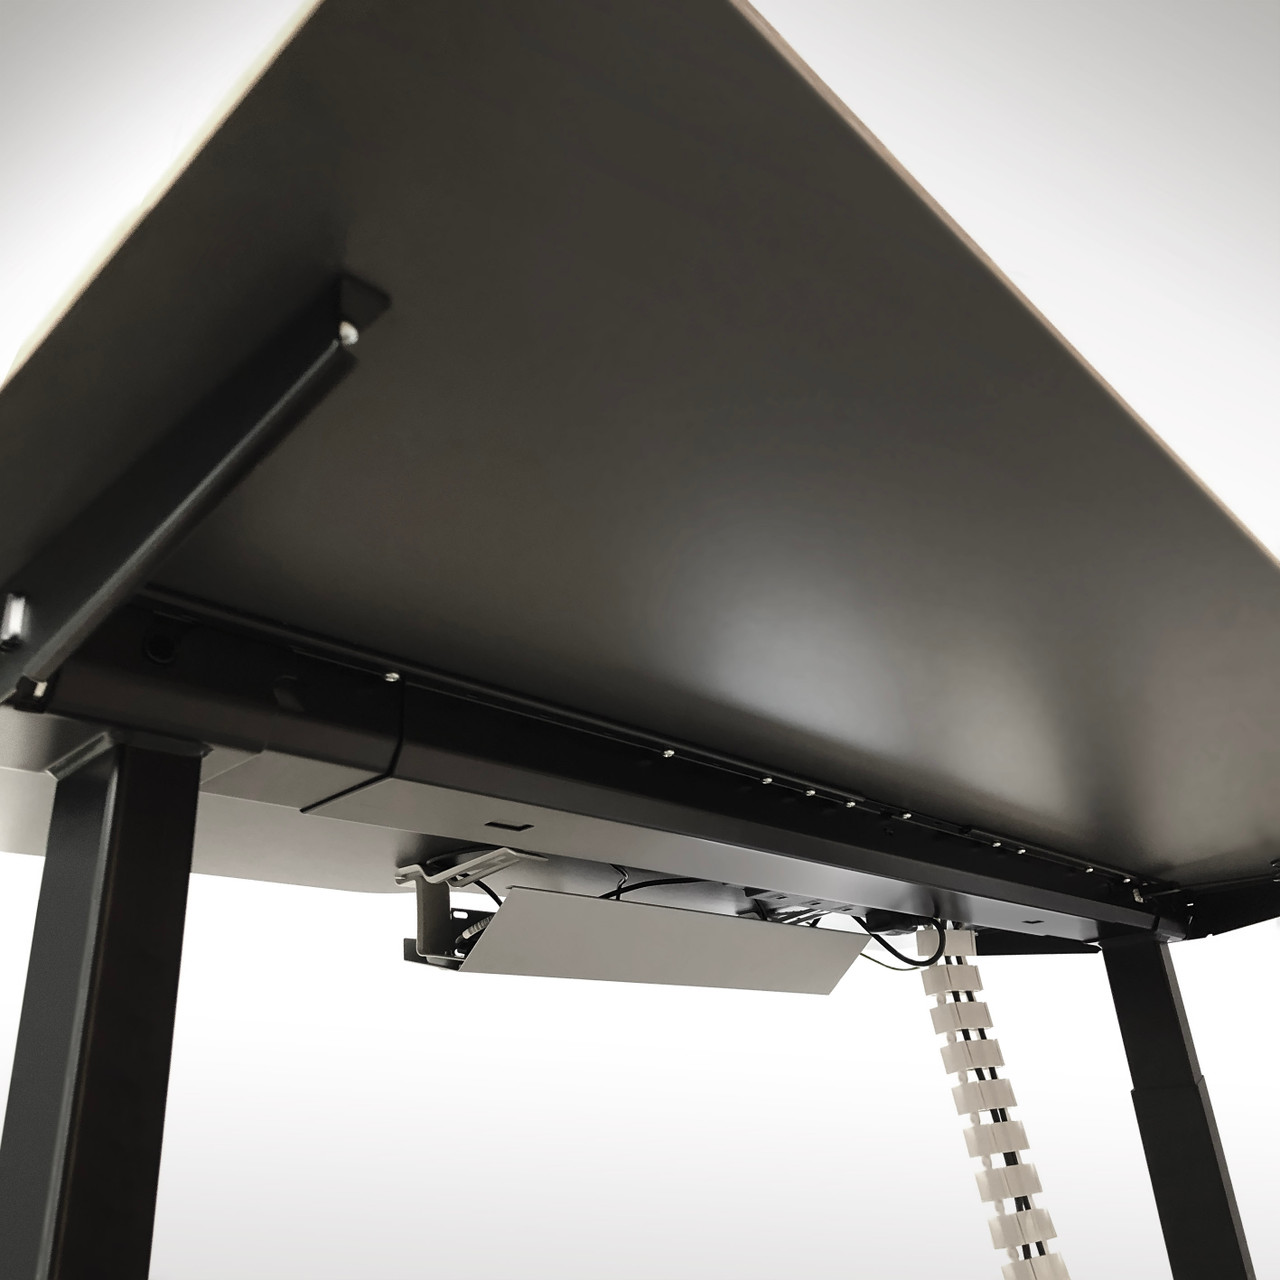 EFurnit Pro Standing Desk With integrated Bluetooth Technology, Mobile App and Intuitive Desk Assembly